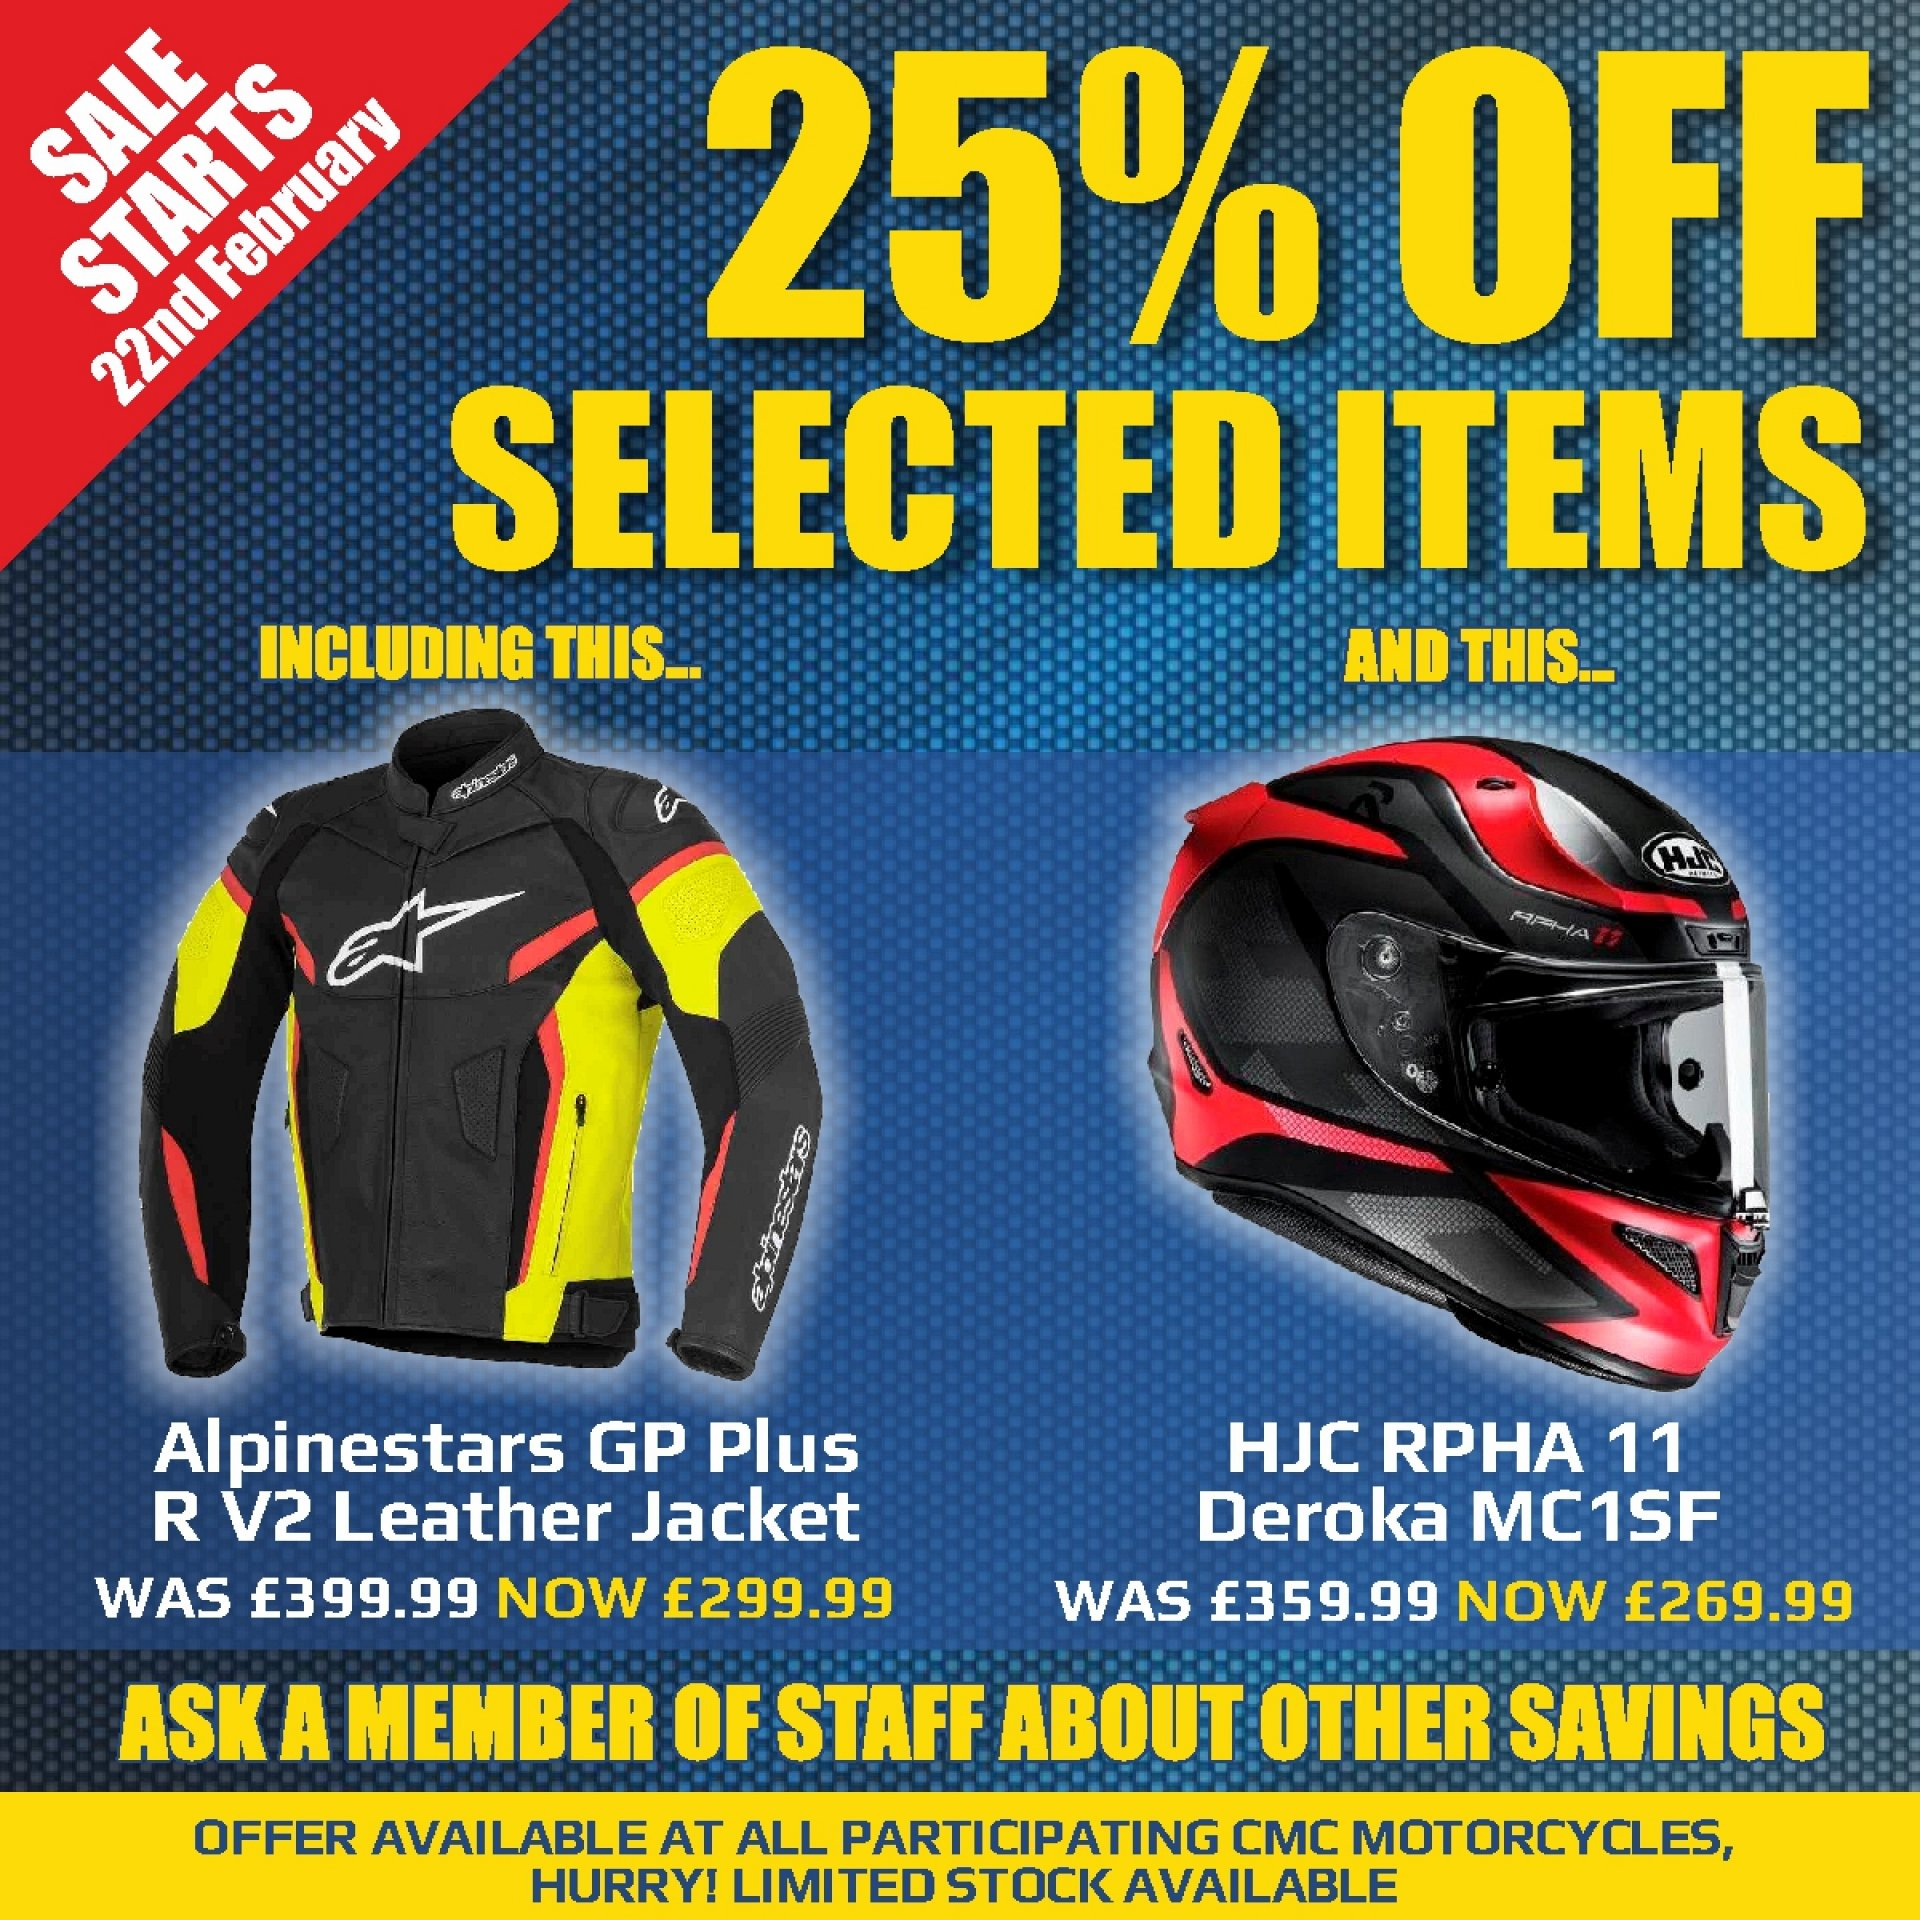 Starts this Saturday 25% off selected items